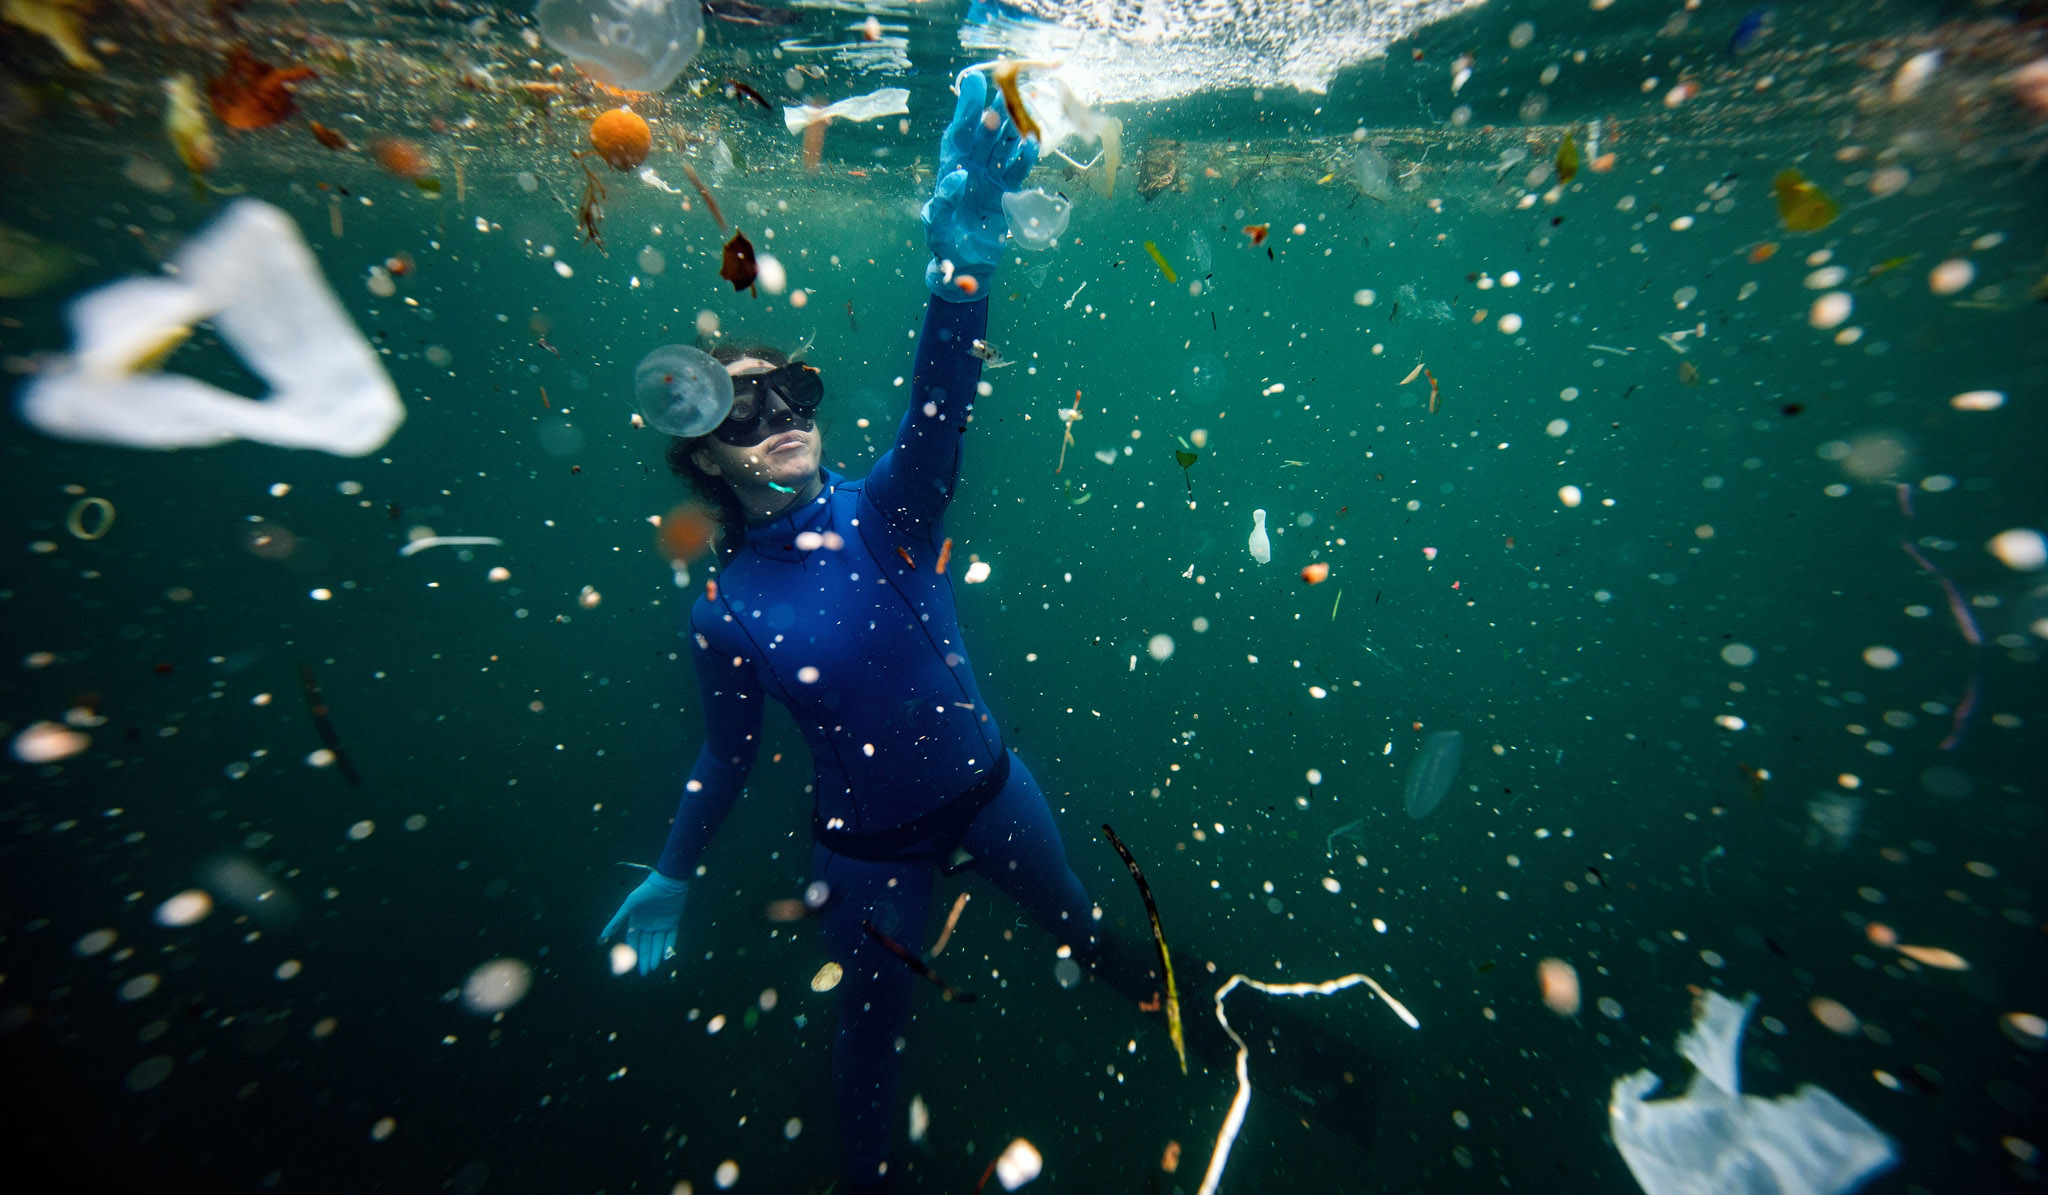 World-record holder free-diver Şahika Ercümen took a dive to raise awareness of plastic pollution in the Bosphorous Strait in Istanbul, Turkey. Waterways are beginning to drown in plastic waste, a problem only made worse by the COVID-19 pandemic.